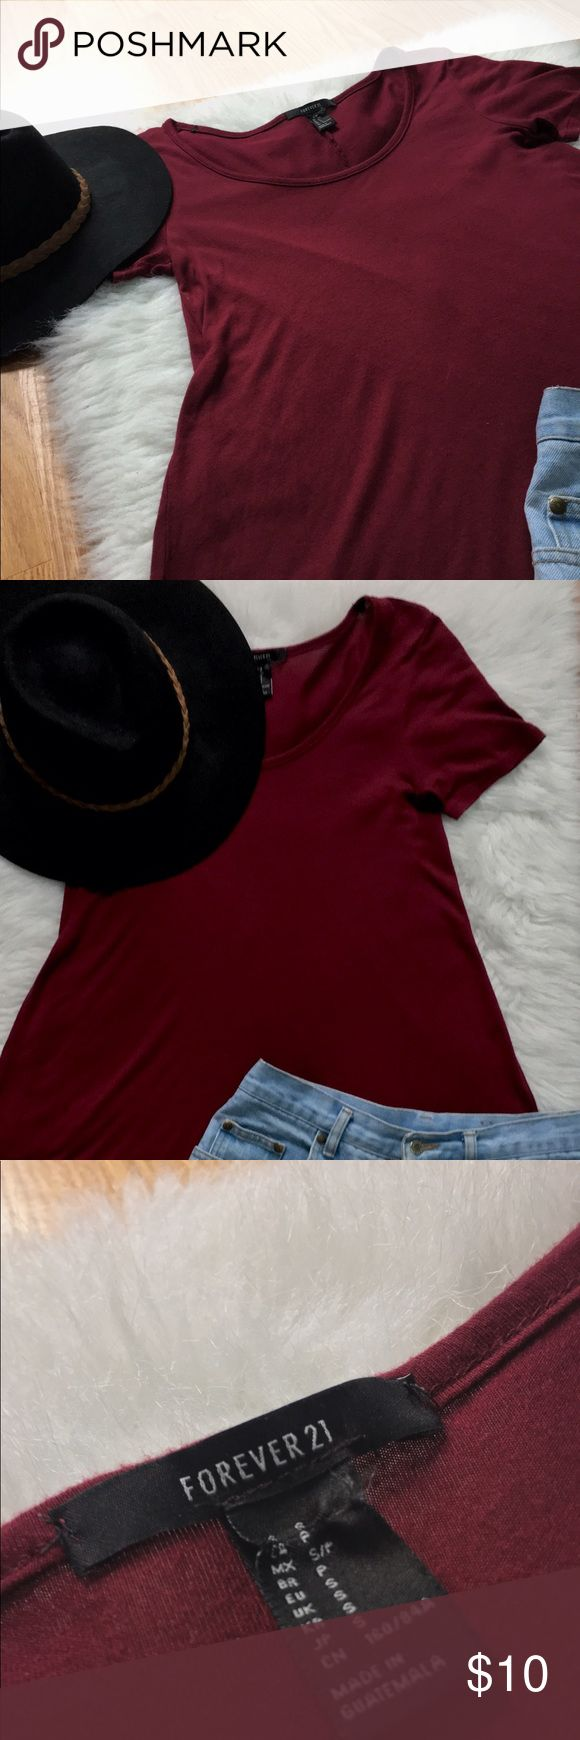 Forever 21 \\\ Flowy Scoop Neck Top Burgundy/deep red color. Very flowy and would be great with leggings or jean shorts. The tag is a little messed up but doesn't affect the item. It's been worn several times but damage. Open to trades! Forever 21 Tops Blouses